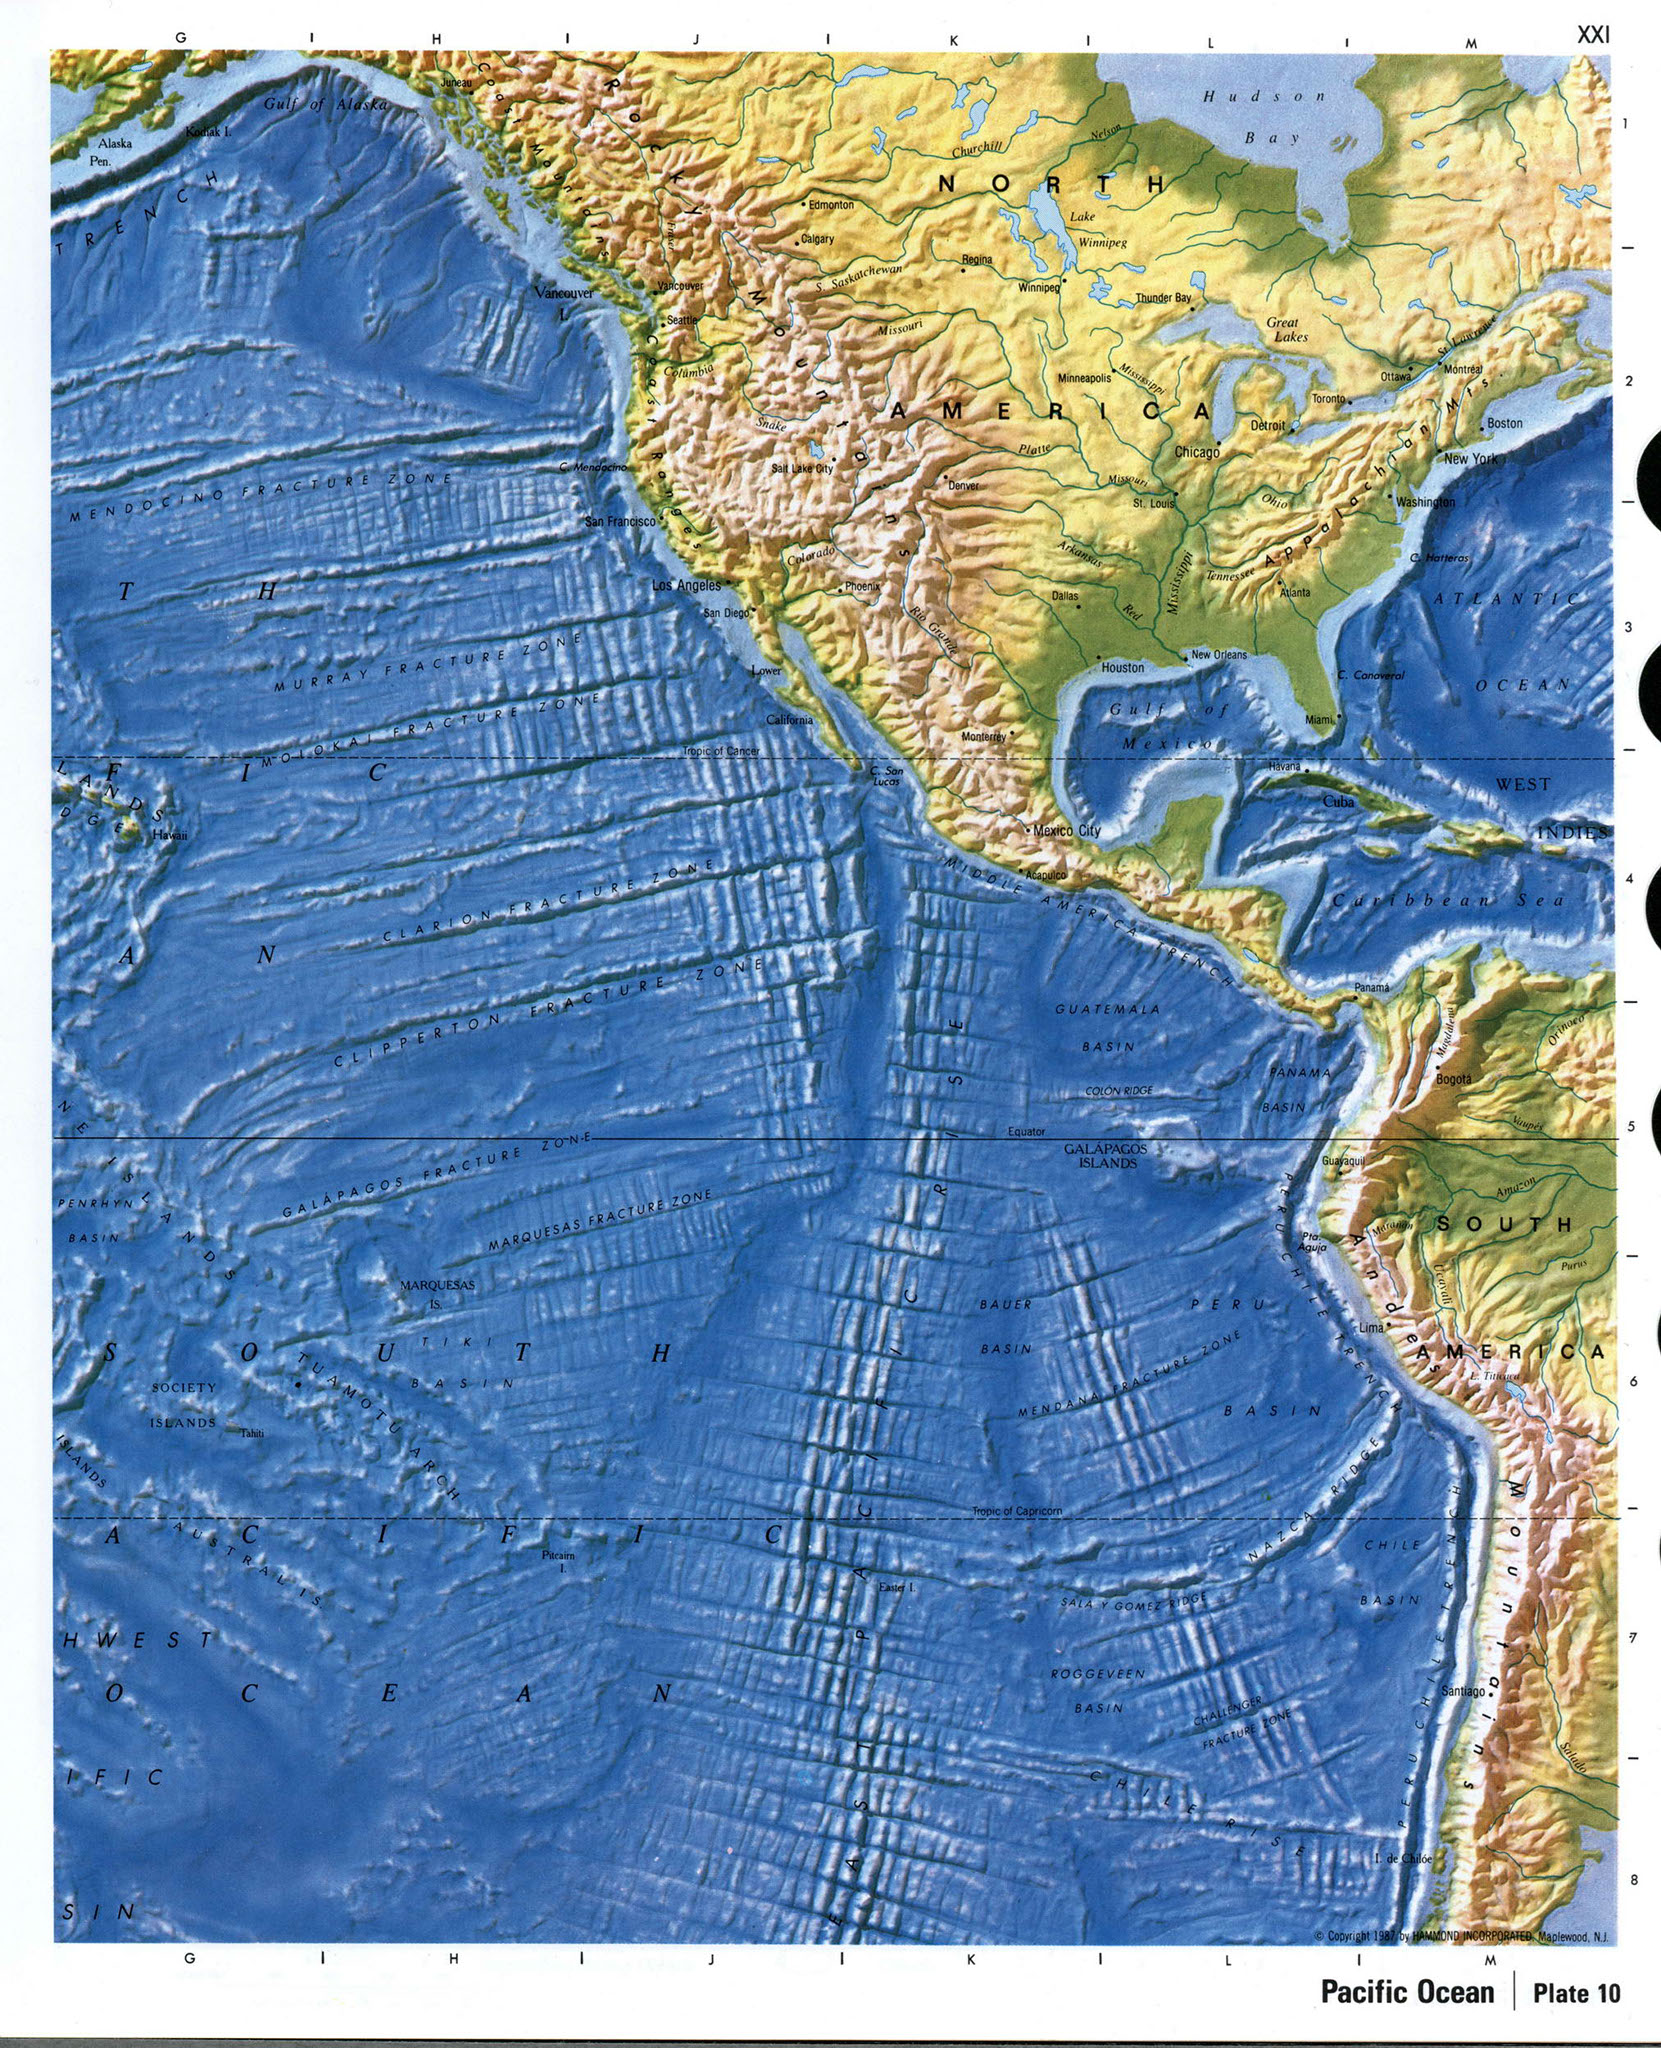 Pacific ocean underwater map